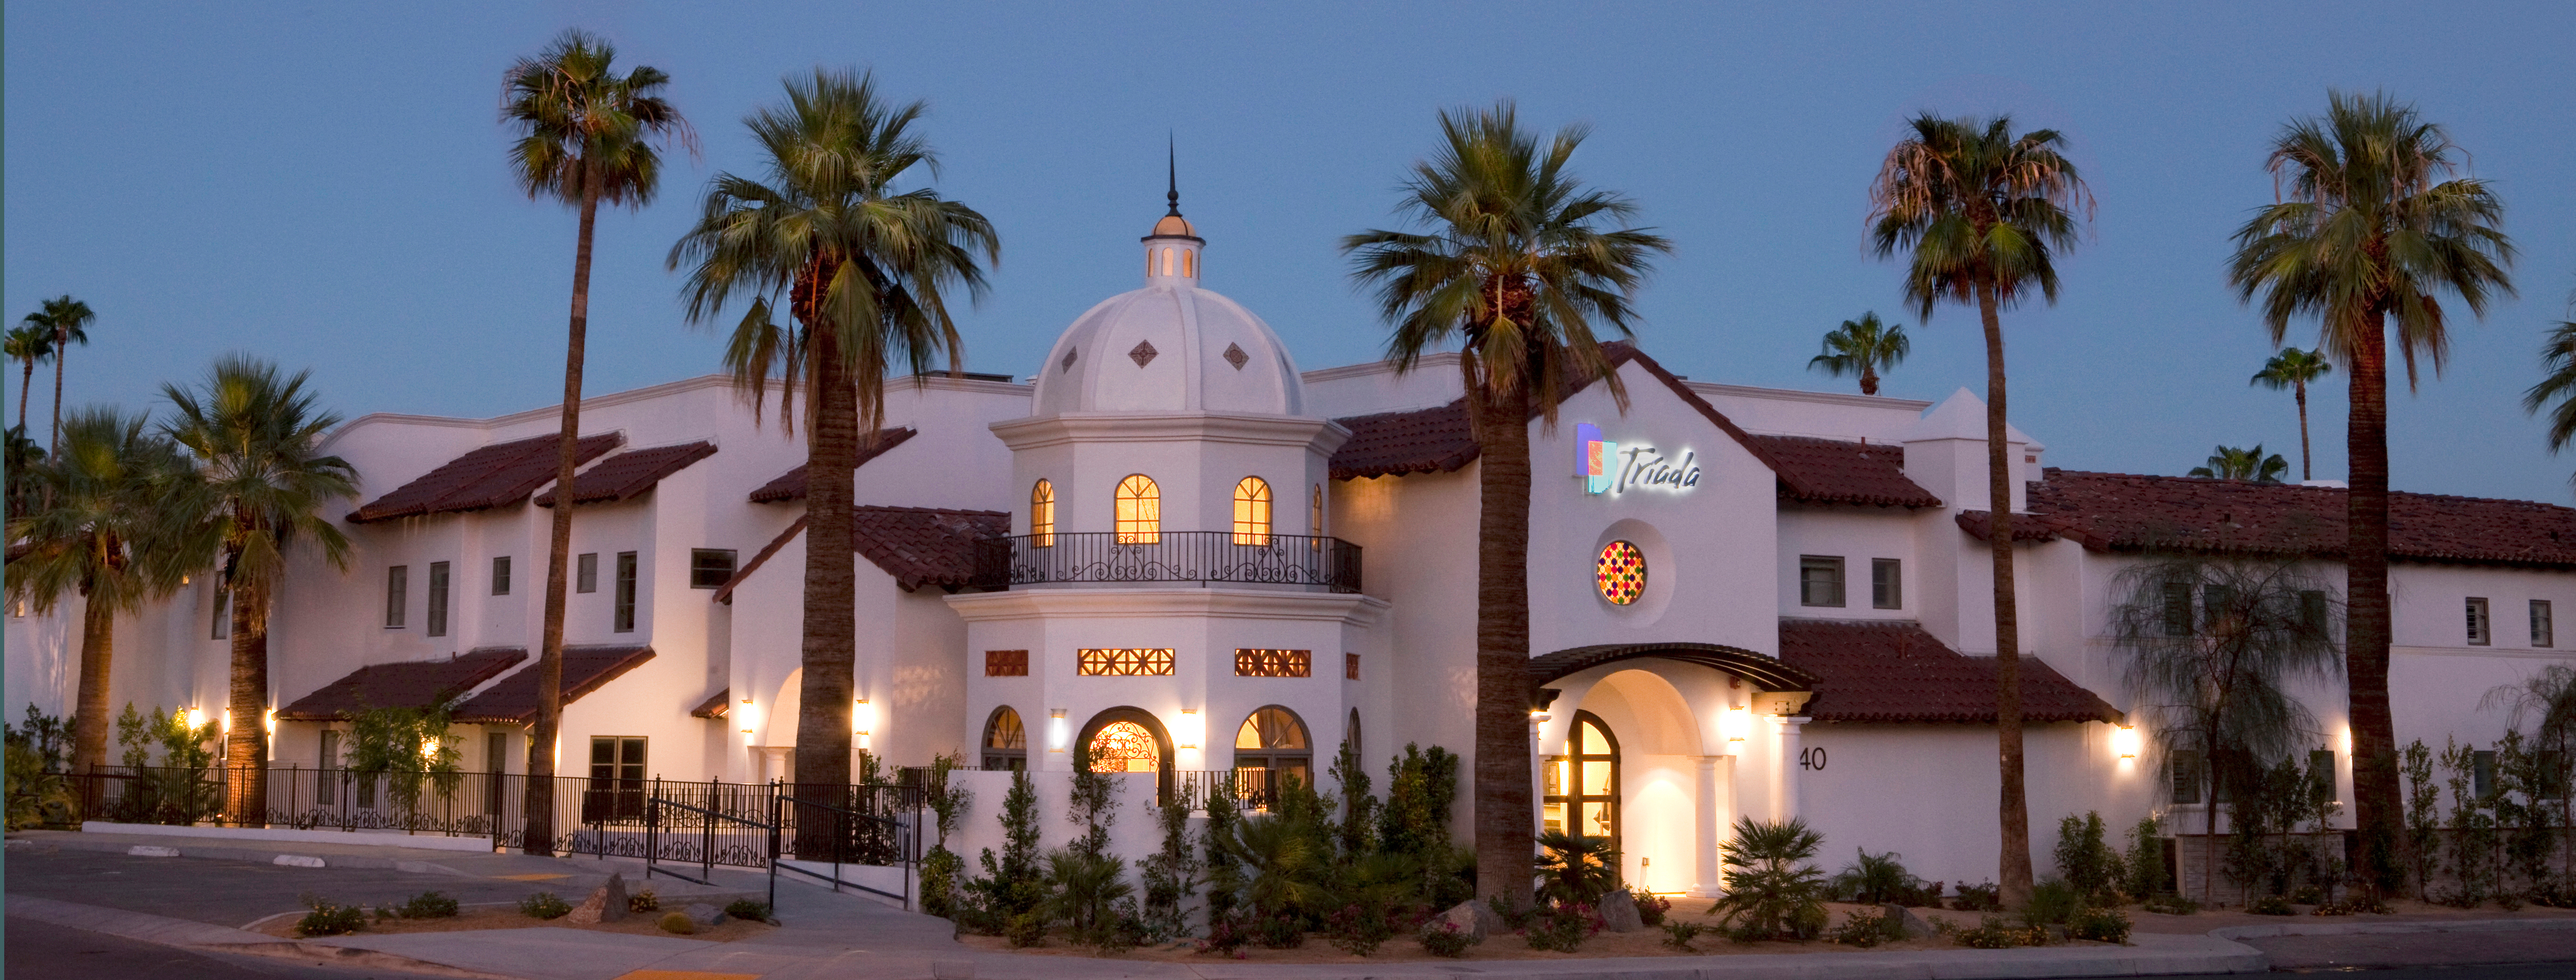 Triada Palm Springs Discerning Collection Of Independent Hotels Welcomes Historic Hollywood Hotel